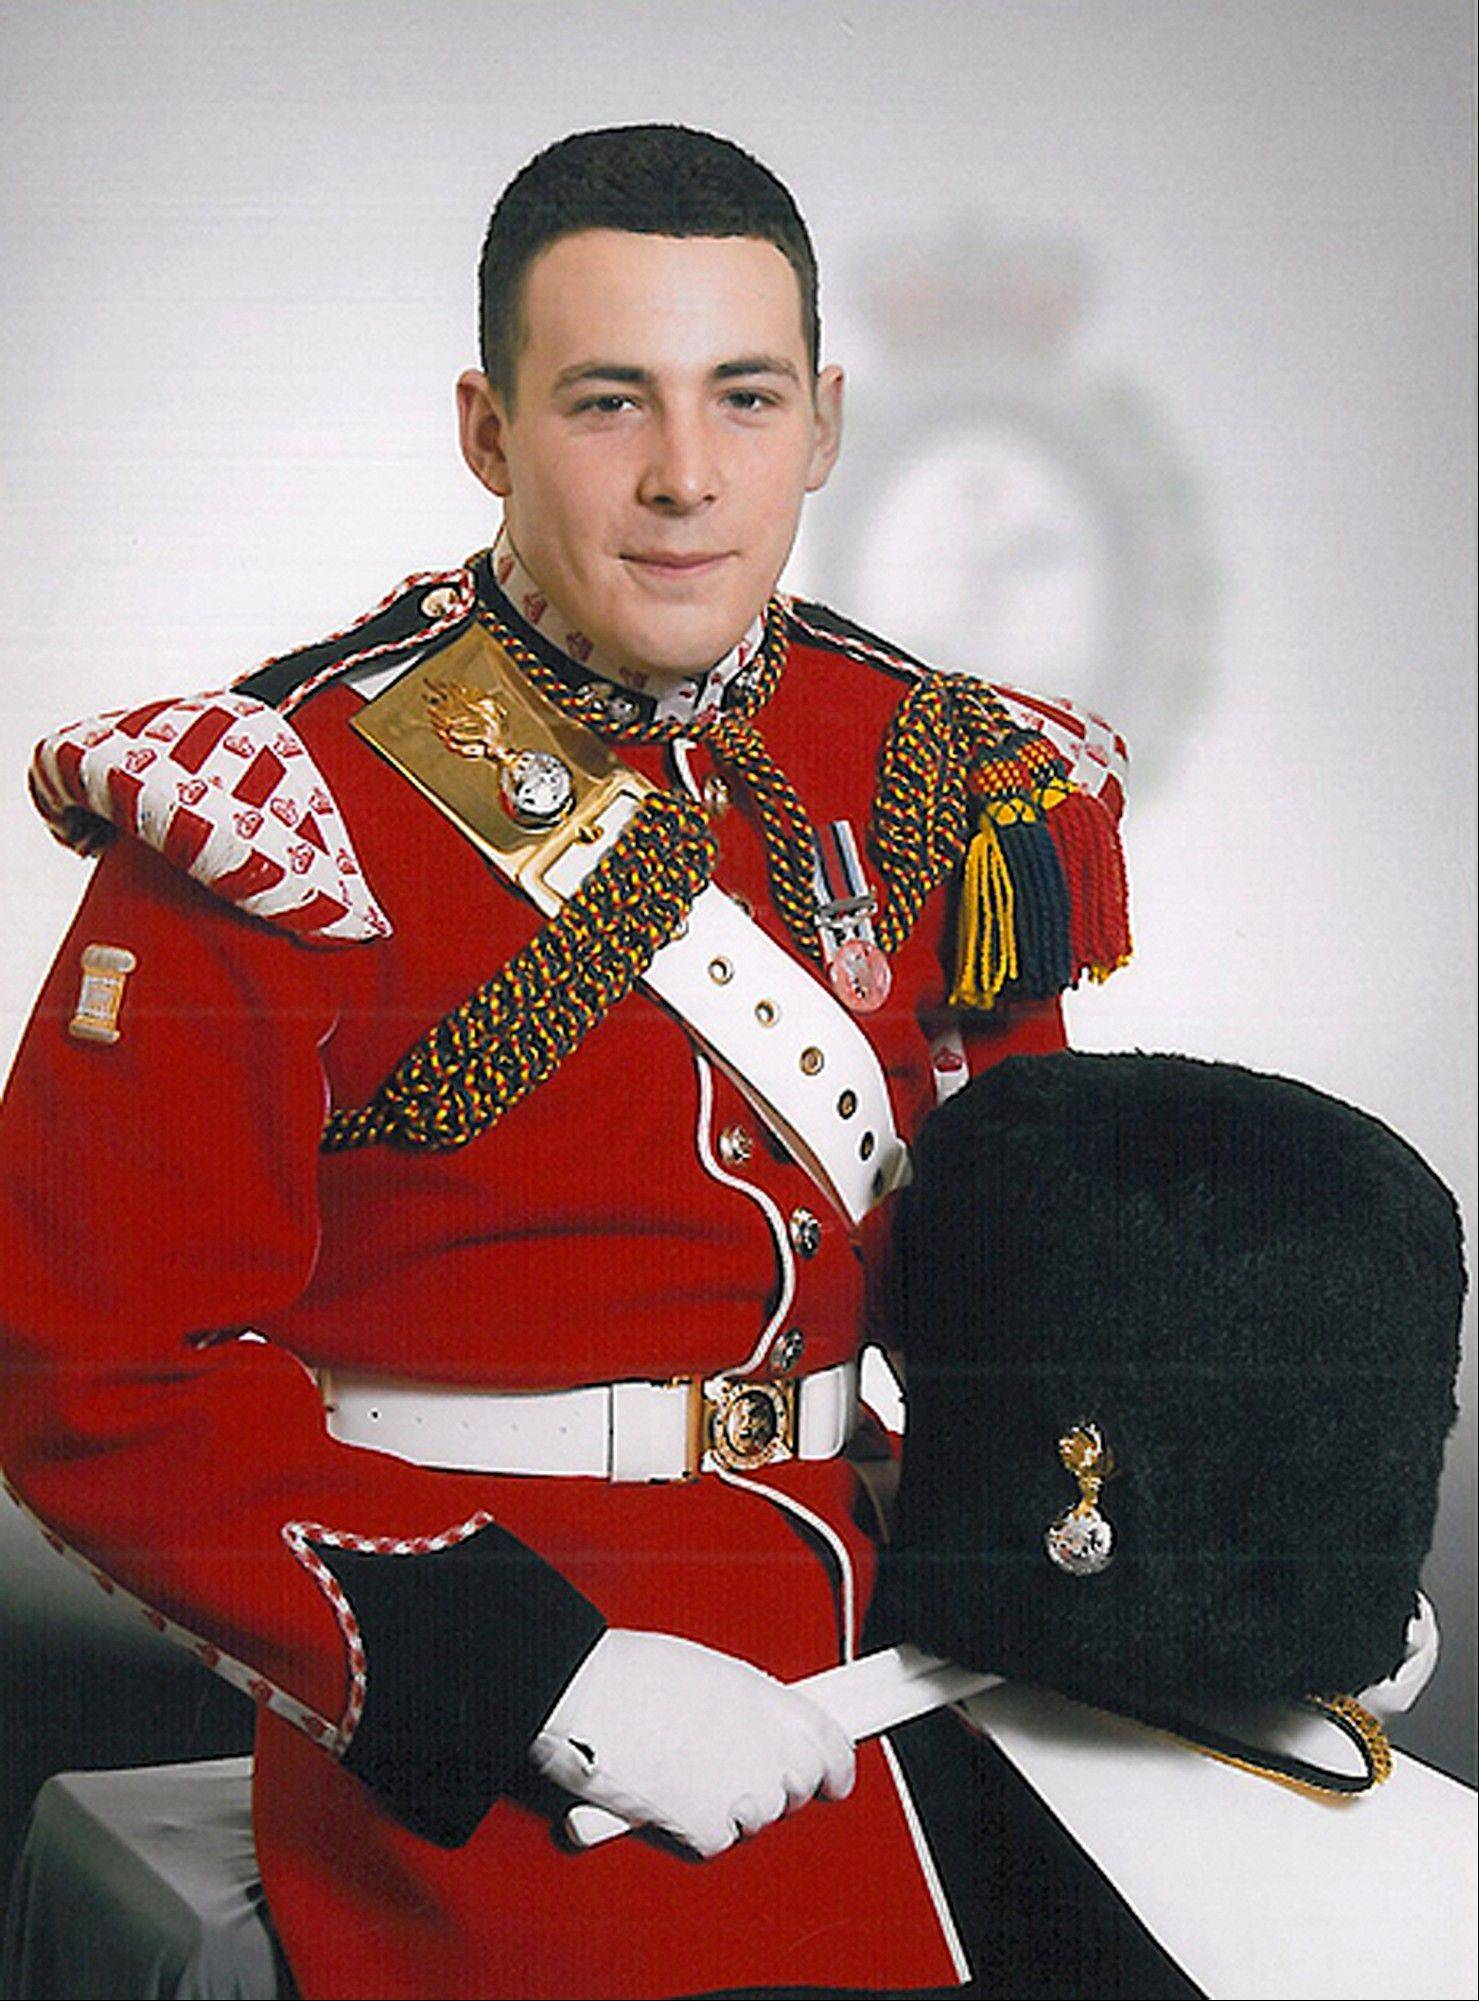 Britain's Ministry of Defense said the soldier killed was Lee Rigby, of 2nd Battalion The Royal Regiment of Fusiliers. Rigby, a 25-year-old with a 2-year-old son joined the army in 2006 and was posted first to Cyprus and later served in Afghanistan and Germany. He took up a recruiting post with the military in London in 2011.